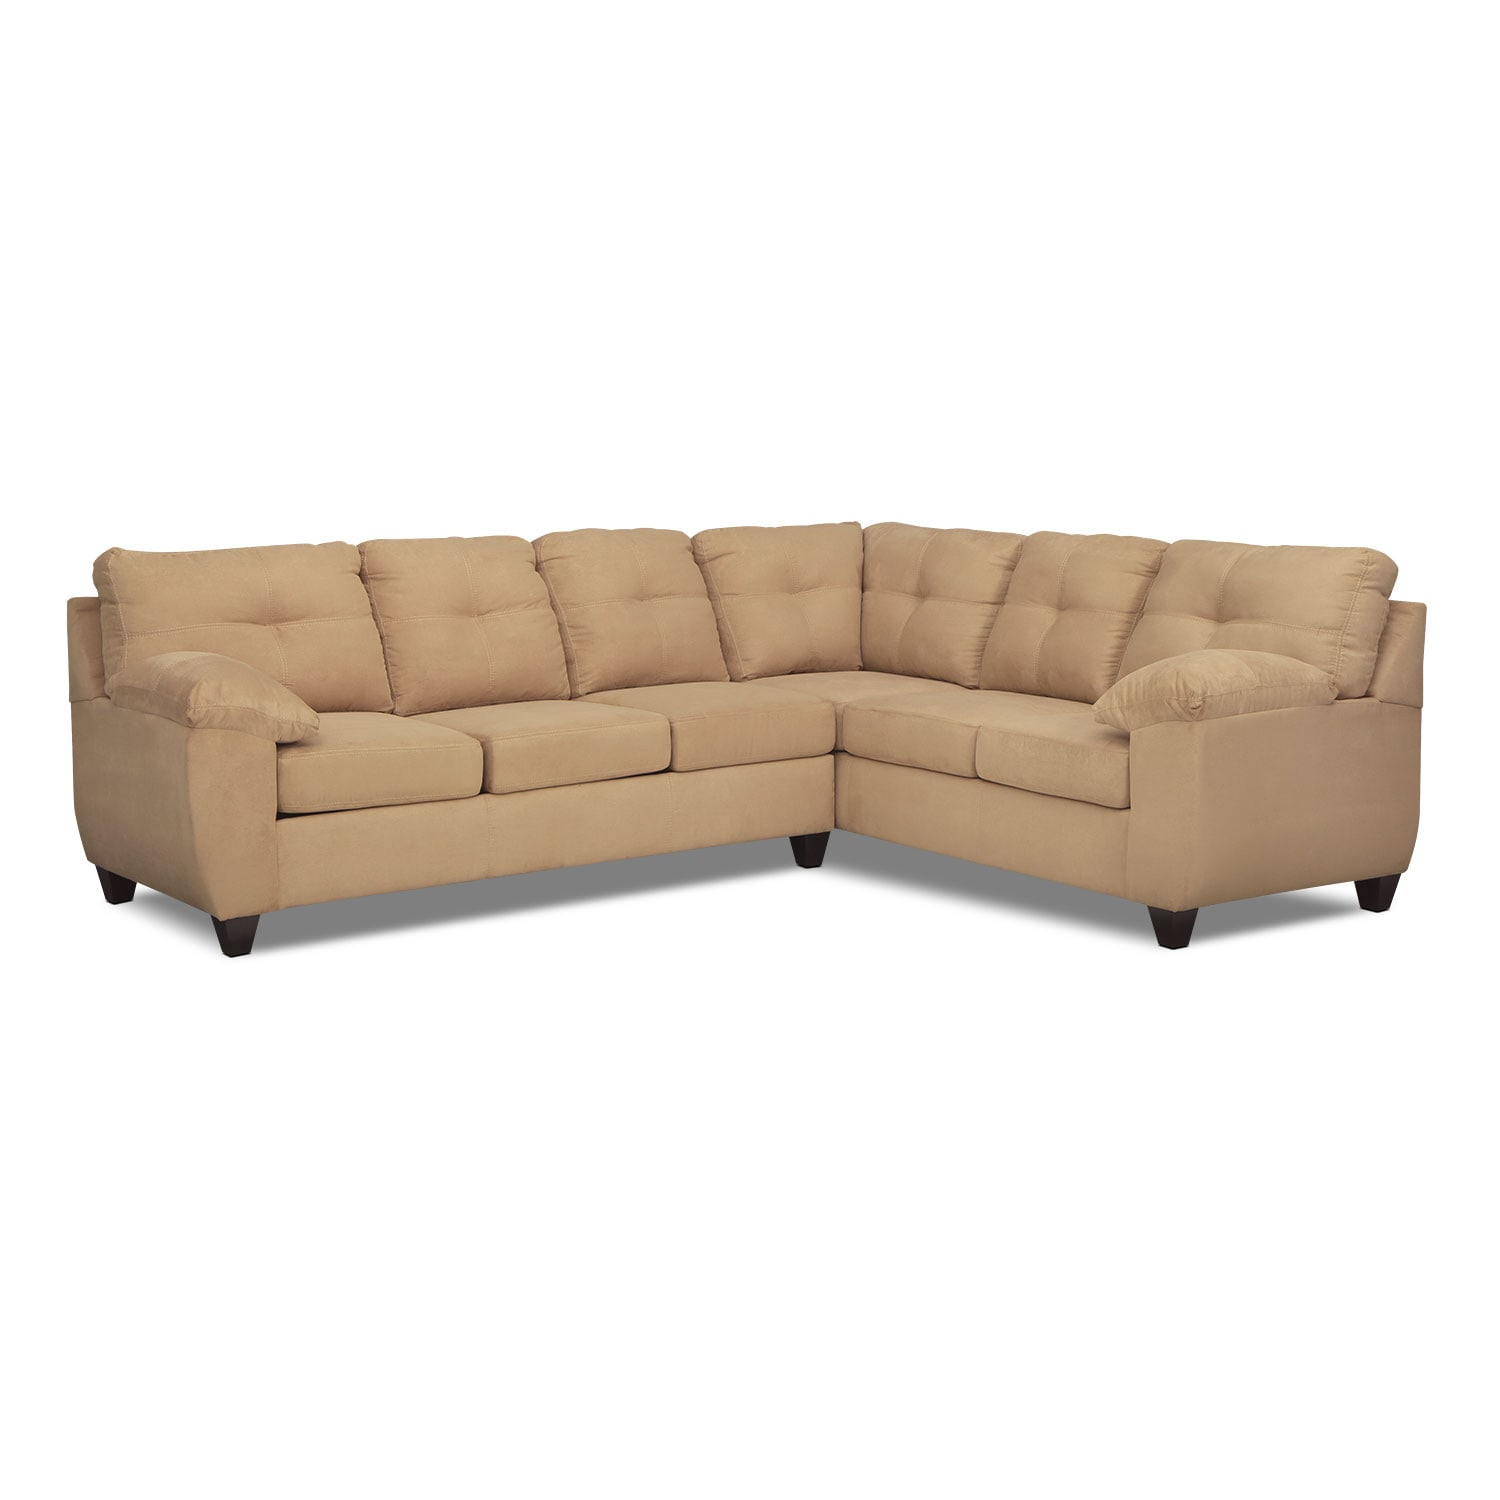 Living Room Furniture - Rialto 2-Piece Sectional with Right-Facing Corner Sofa - Camel